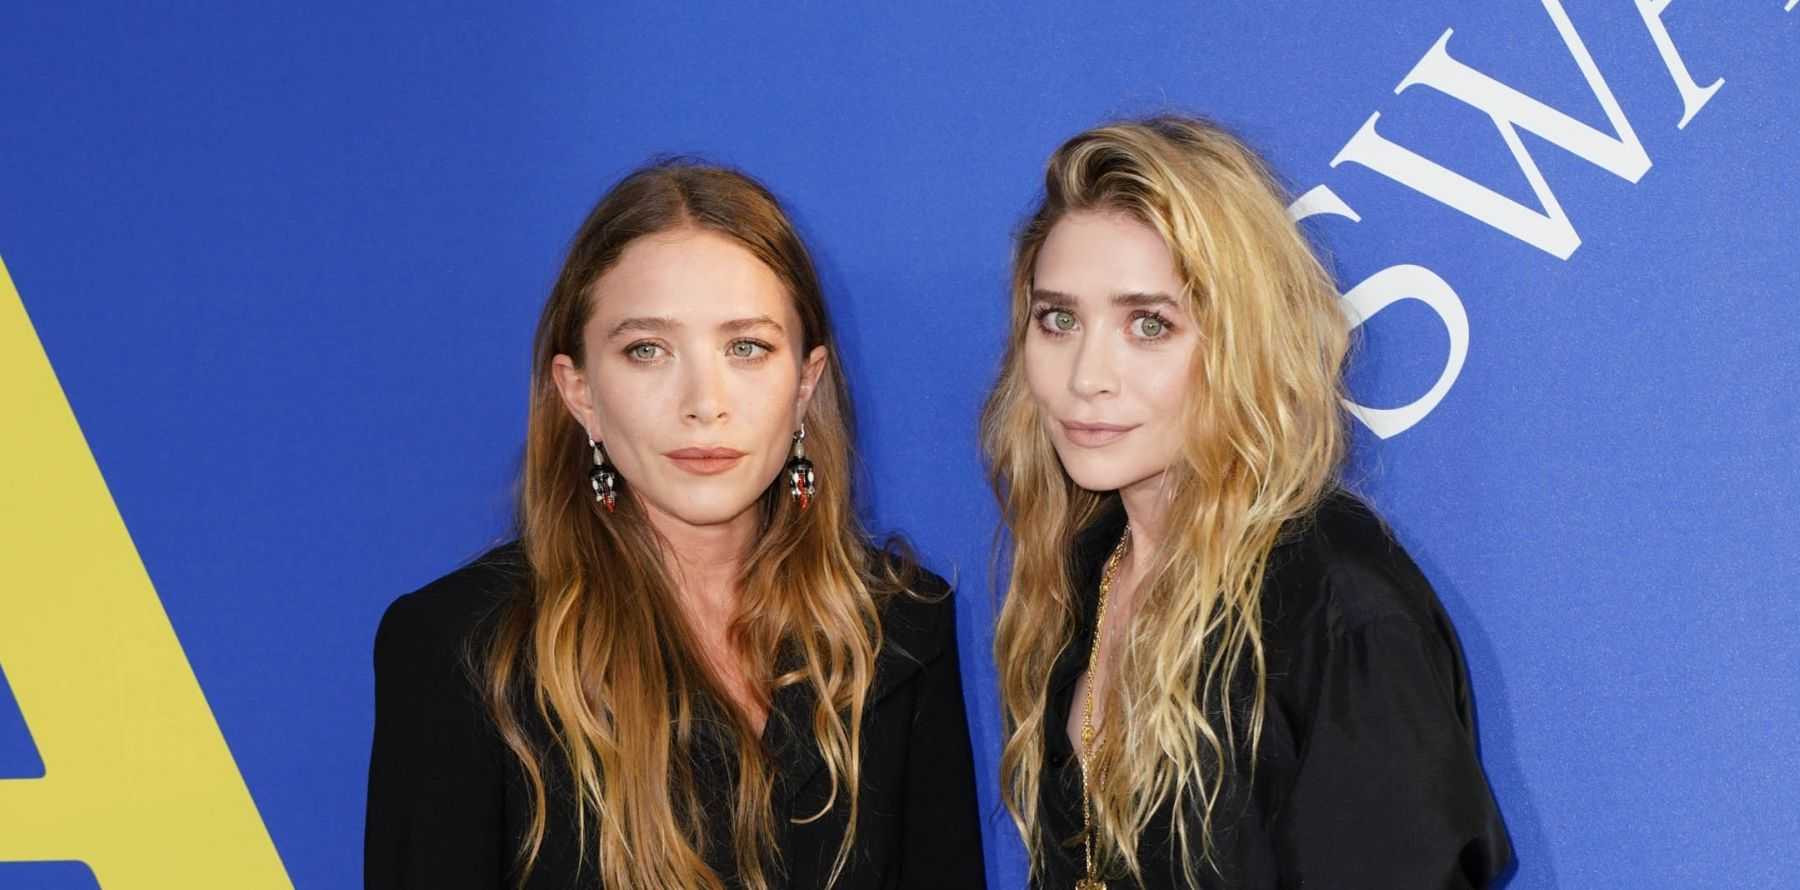 Mary kate and ashley olsen 2019 dating memes